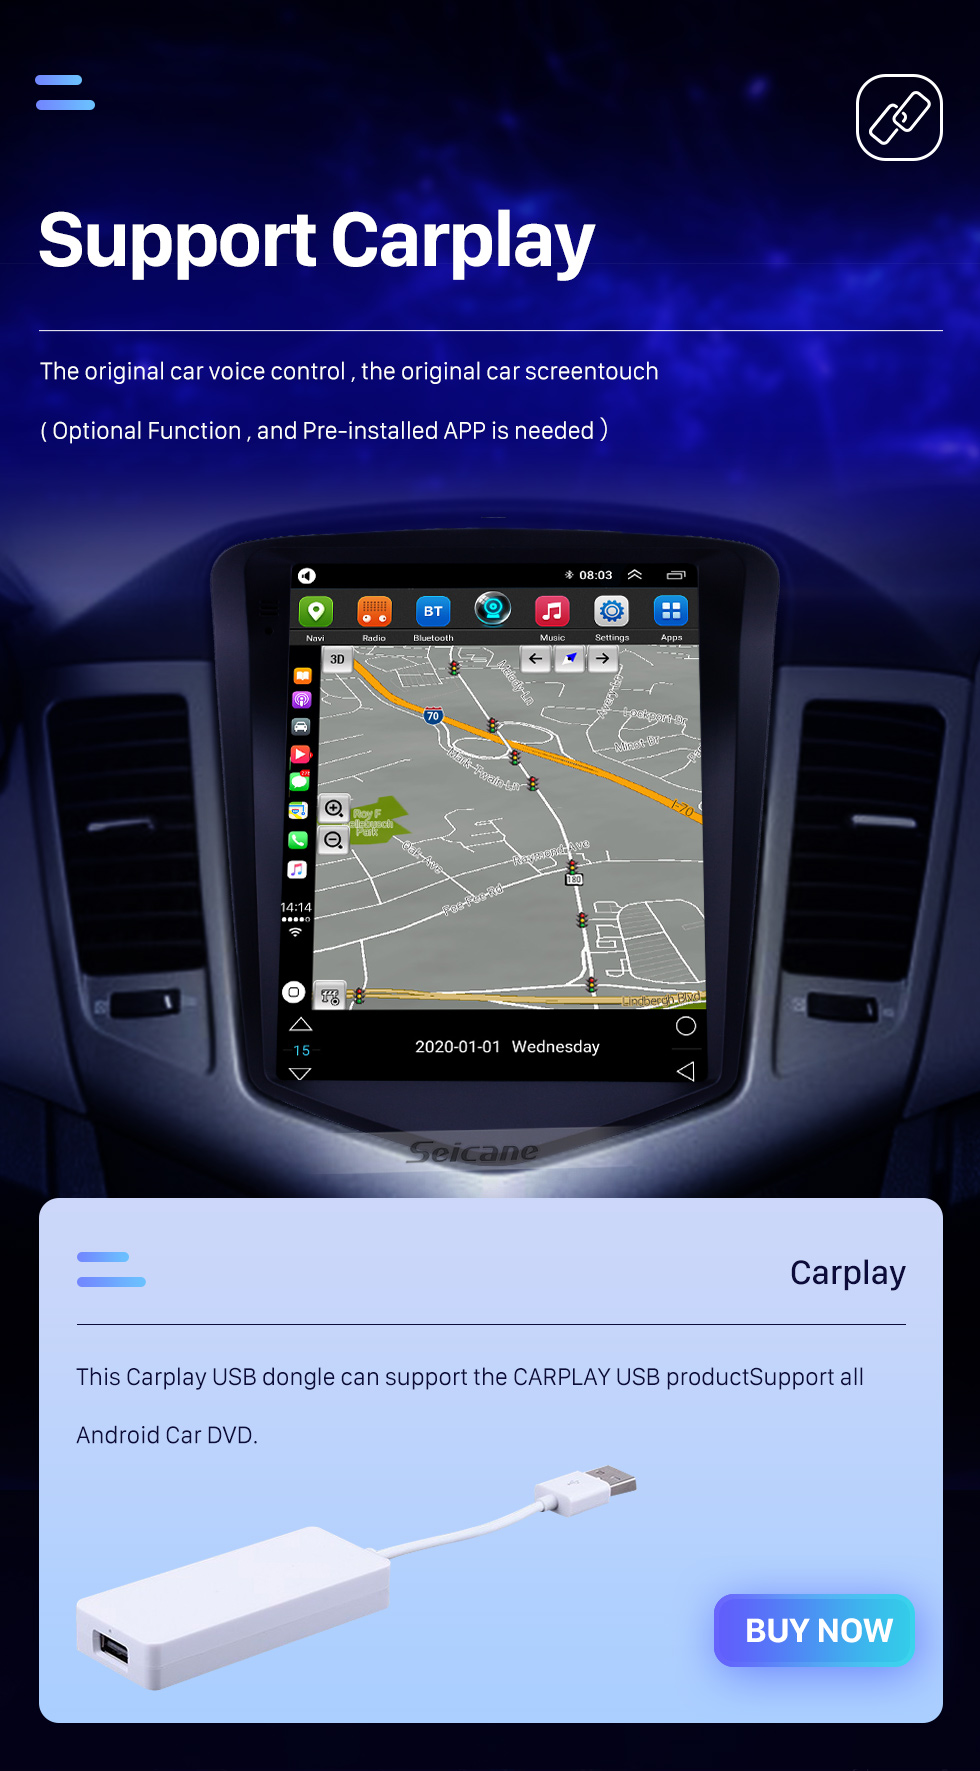 Seicane OEM 9.7 inch Android 10.0 for chevy Chevrolet Classic Cruze 2008-2013 GPS Navigation Radio with Touchscreen Bluetooth WIFI support TPMS Carplay